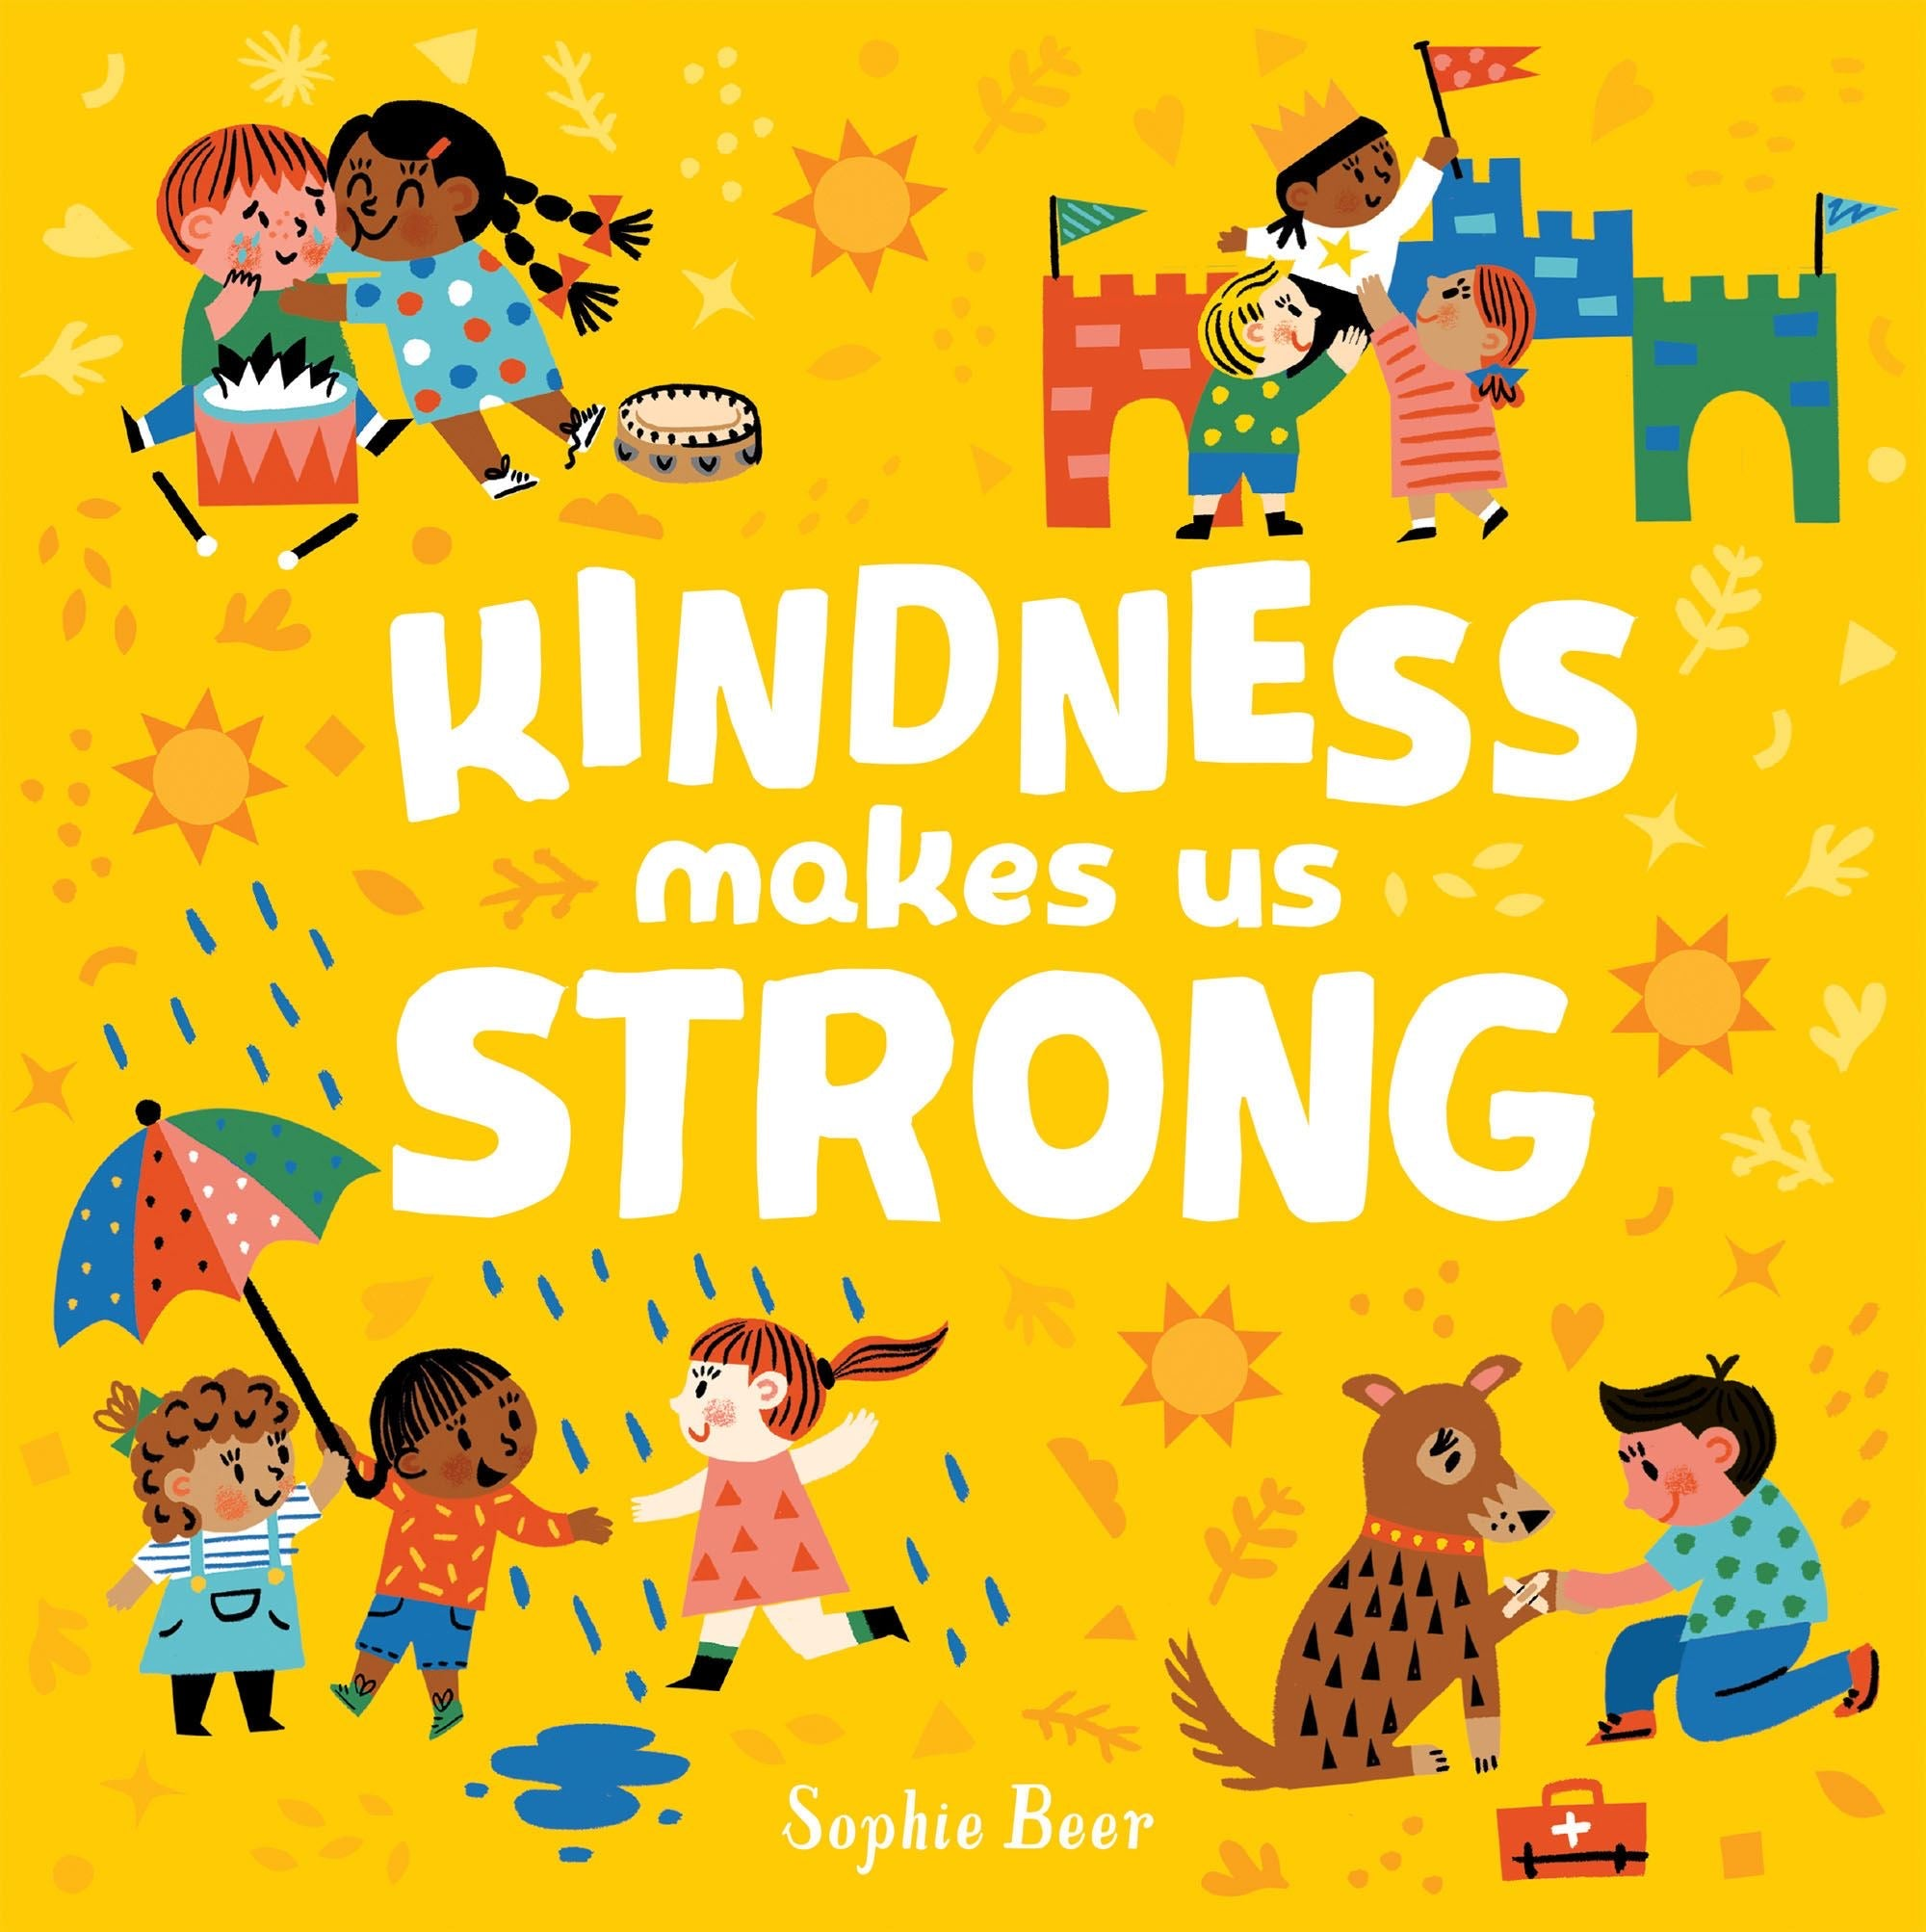 Kindness makes us strong (board)